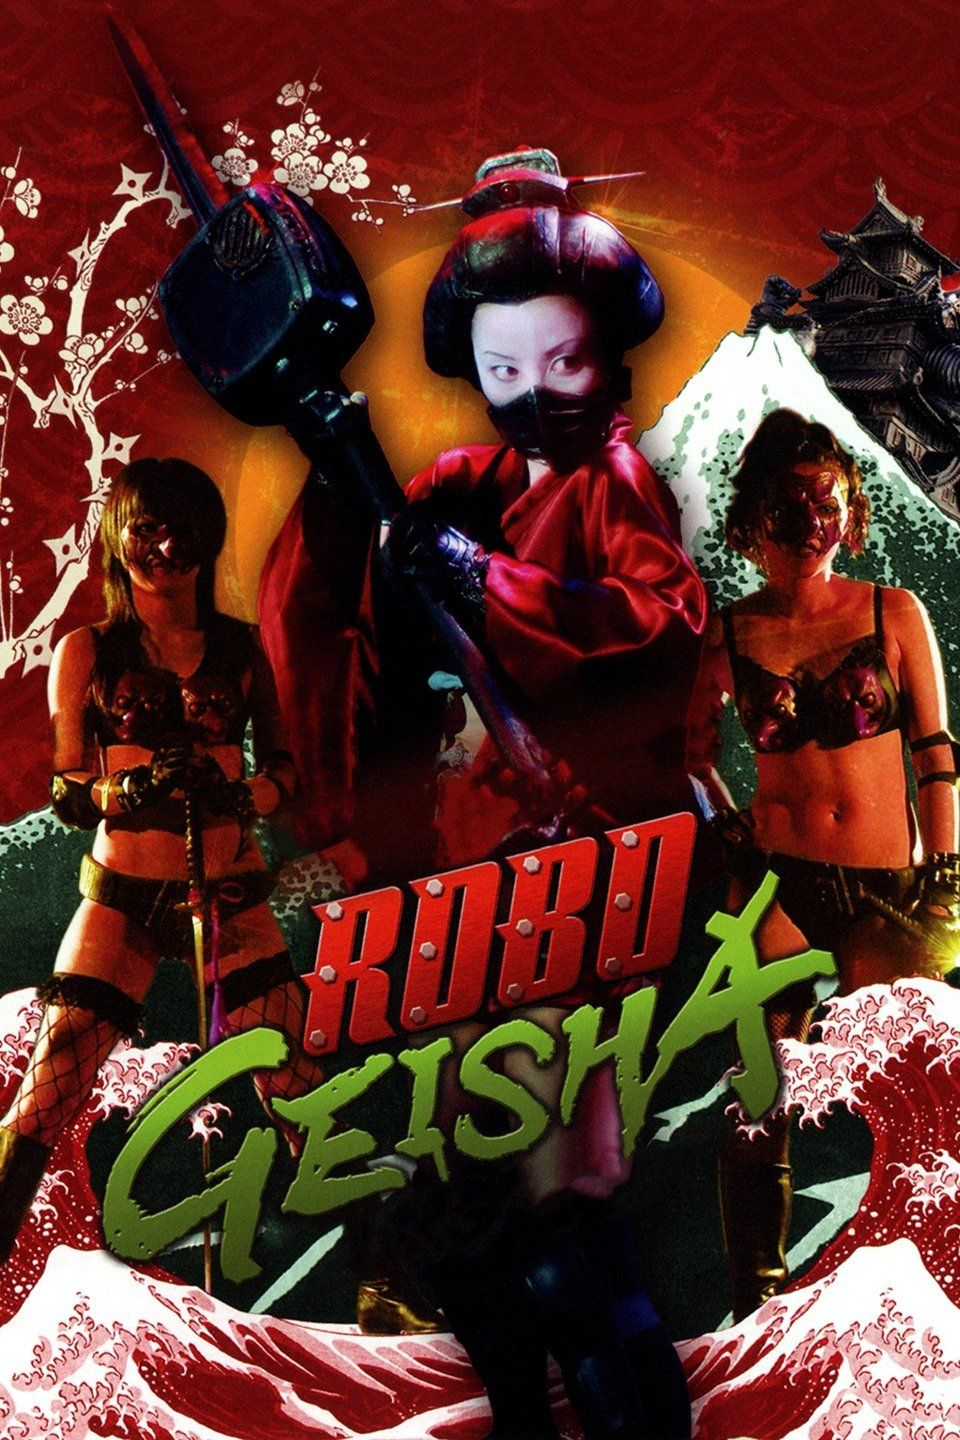 Robo Geisha Asian Horror Movies B Movie Asian Film If you like movies like oldboy, here are the best korean revenge movies, ranked by fans everywhere. robo geisha asian horror movies b